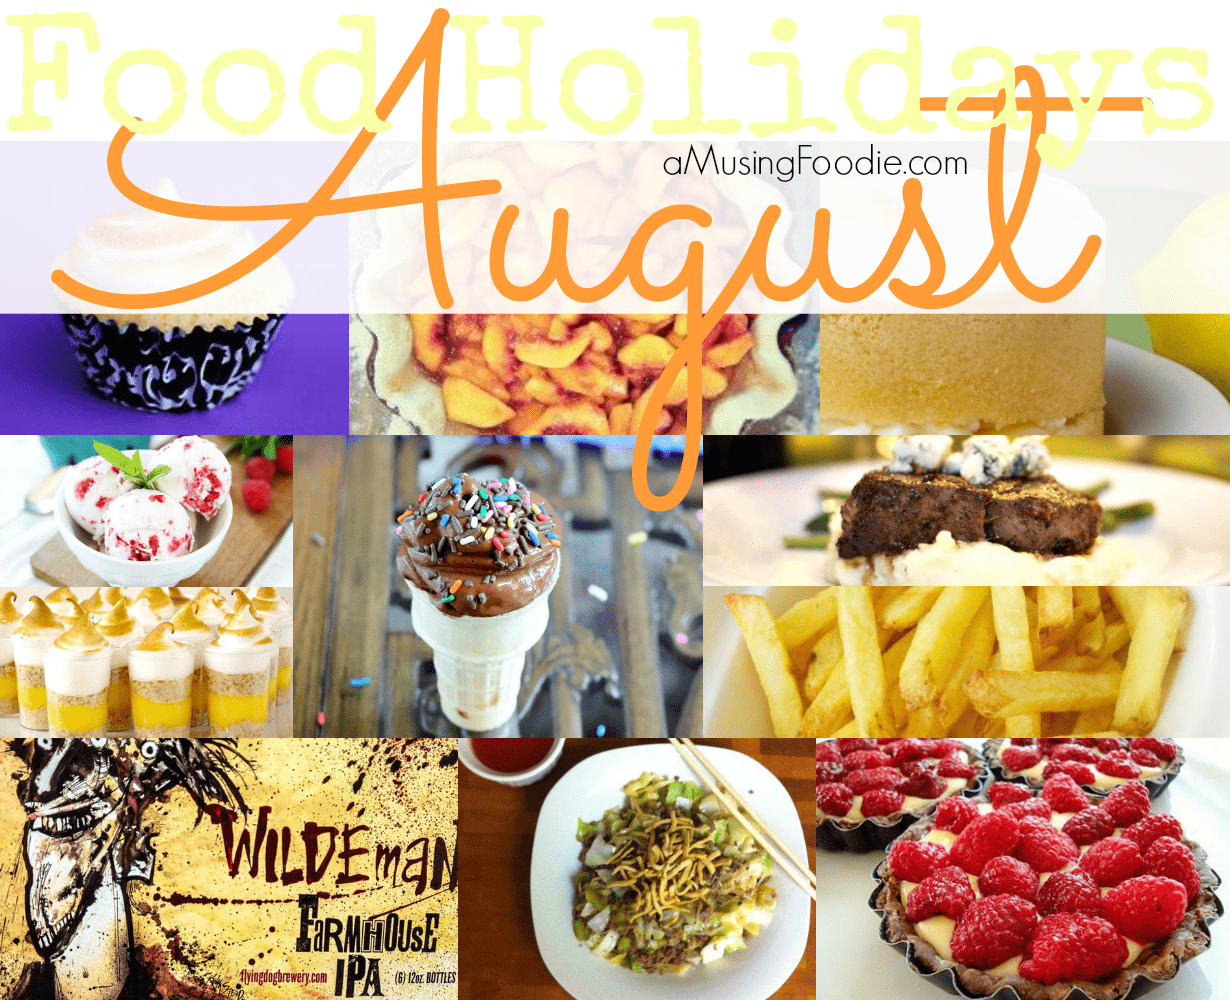 august food holidays, national food holidays, american food holidays